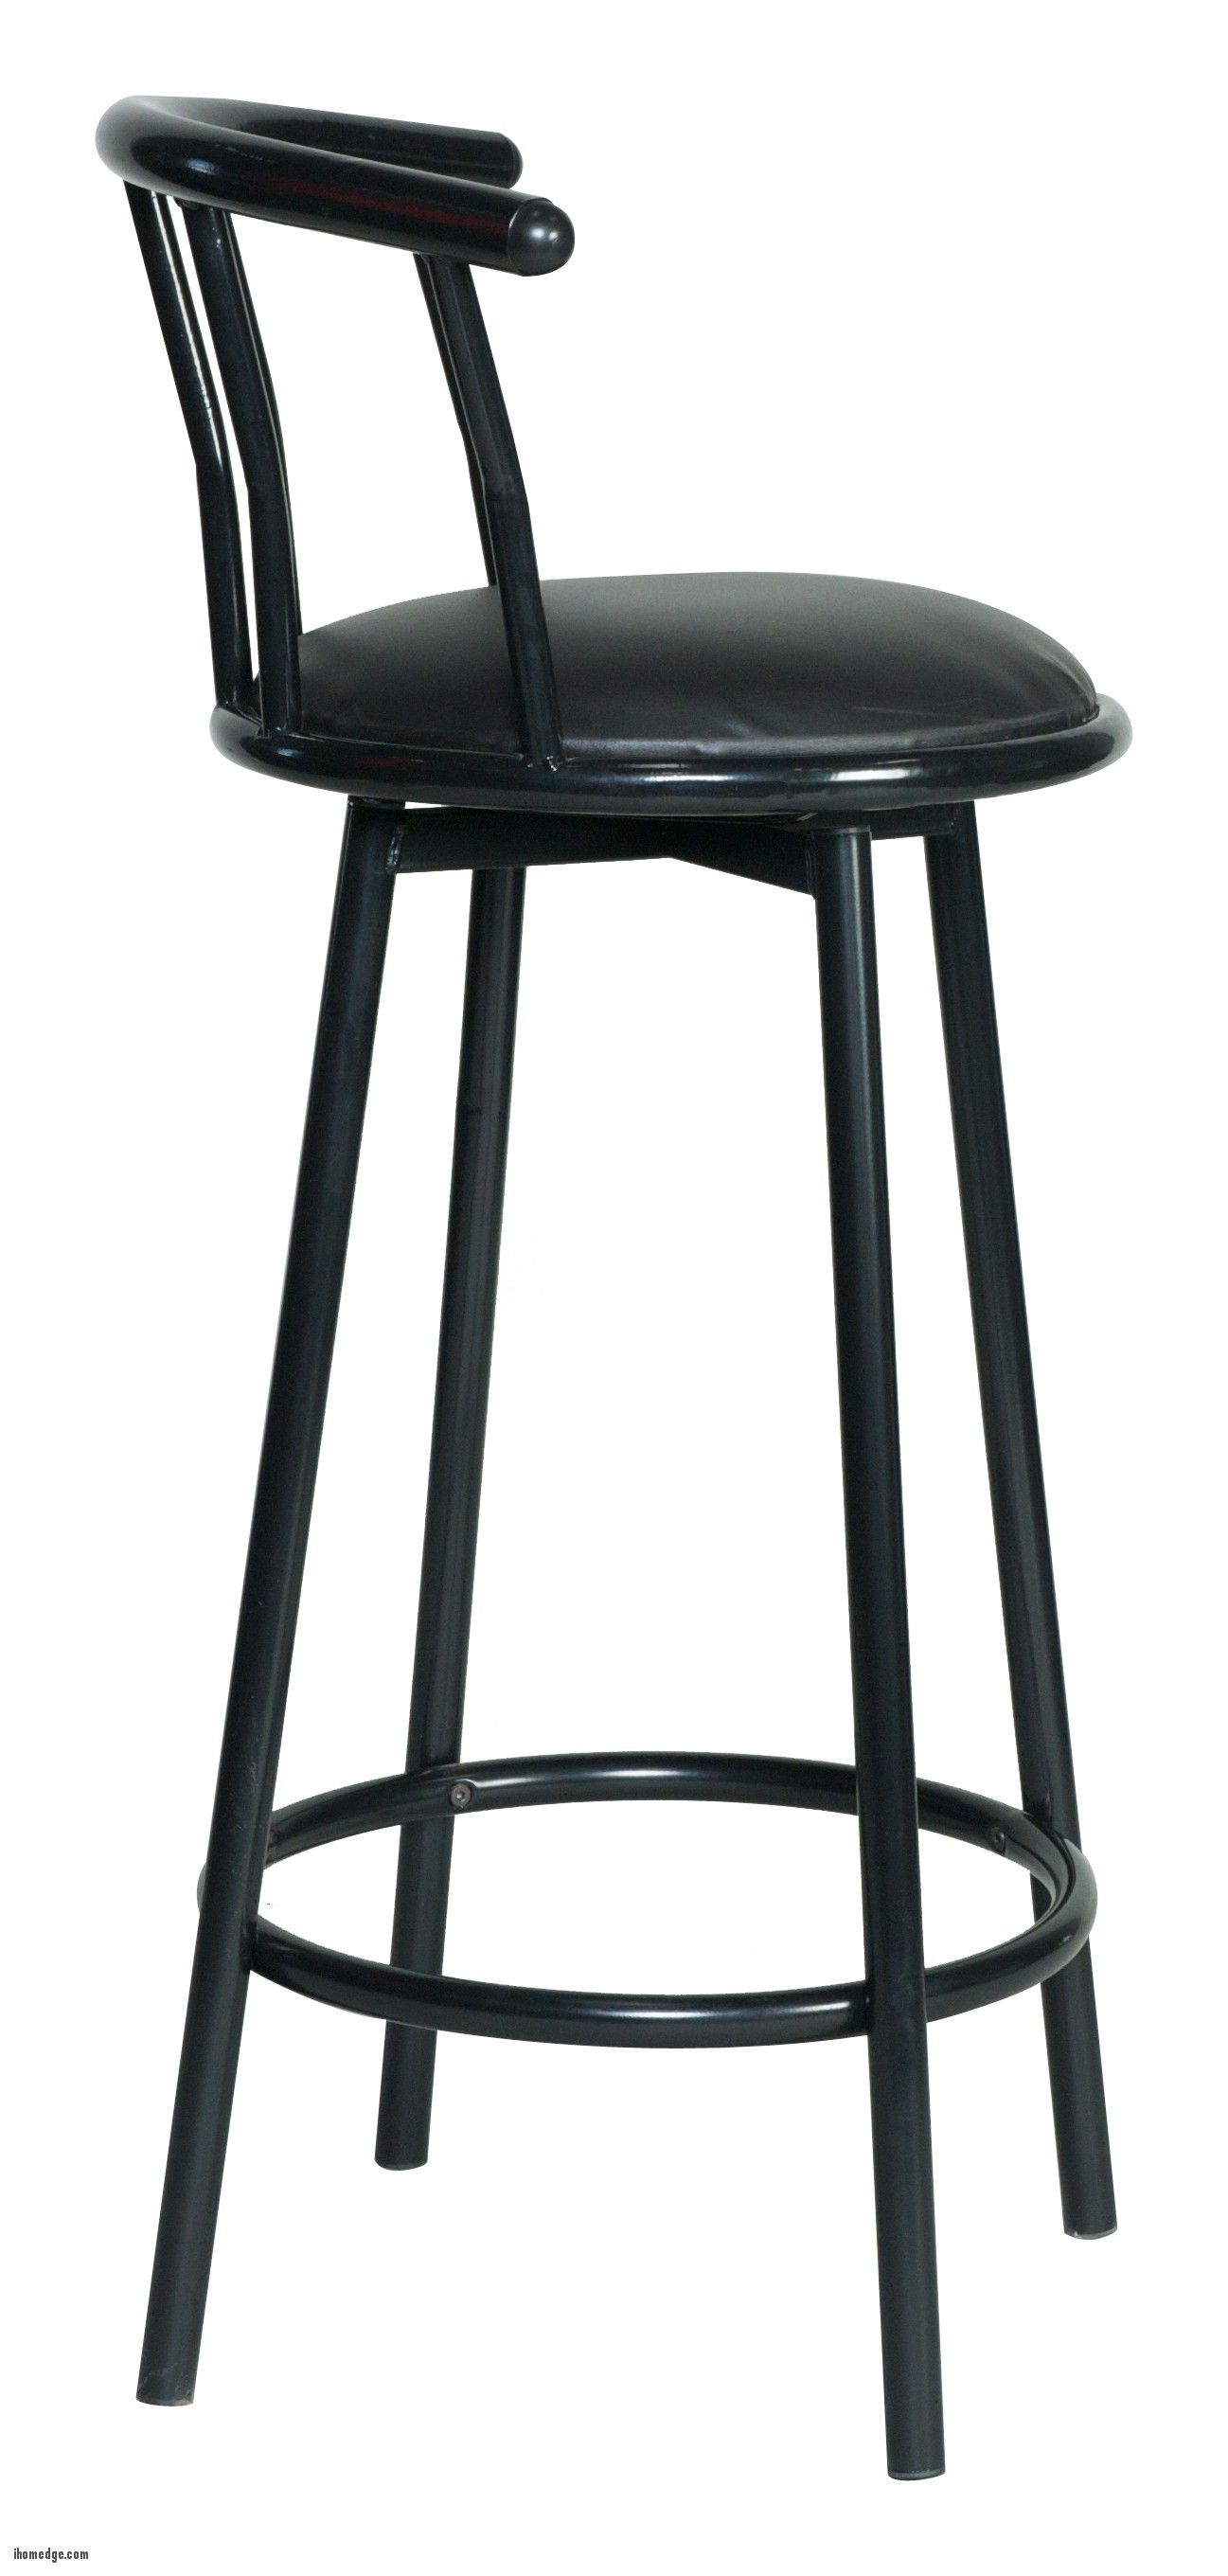 Pin by ihomedge on Furniture Bar stools with backs